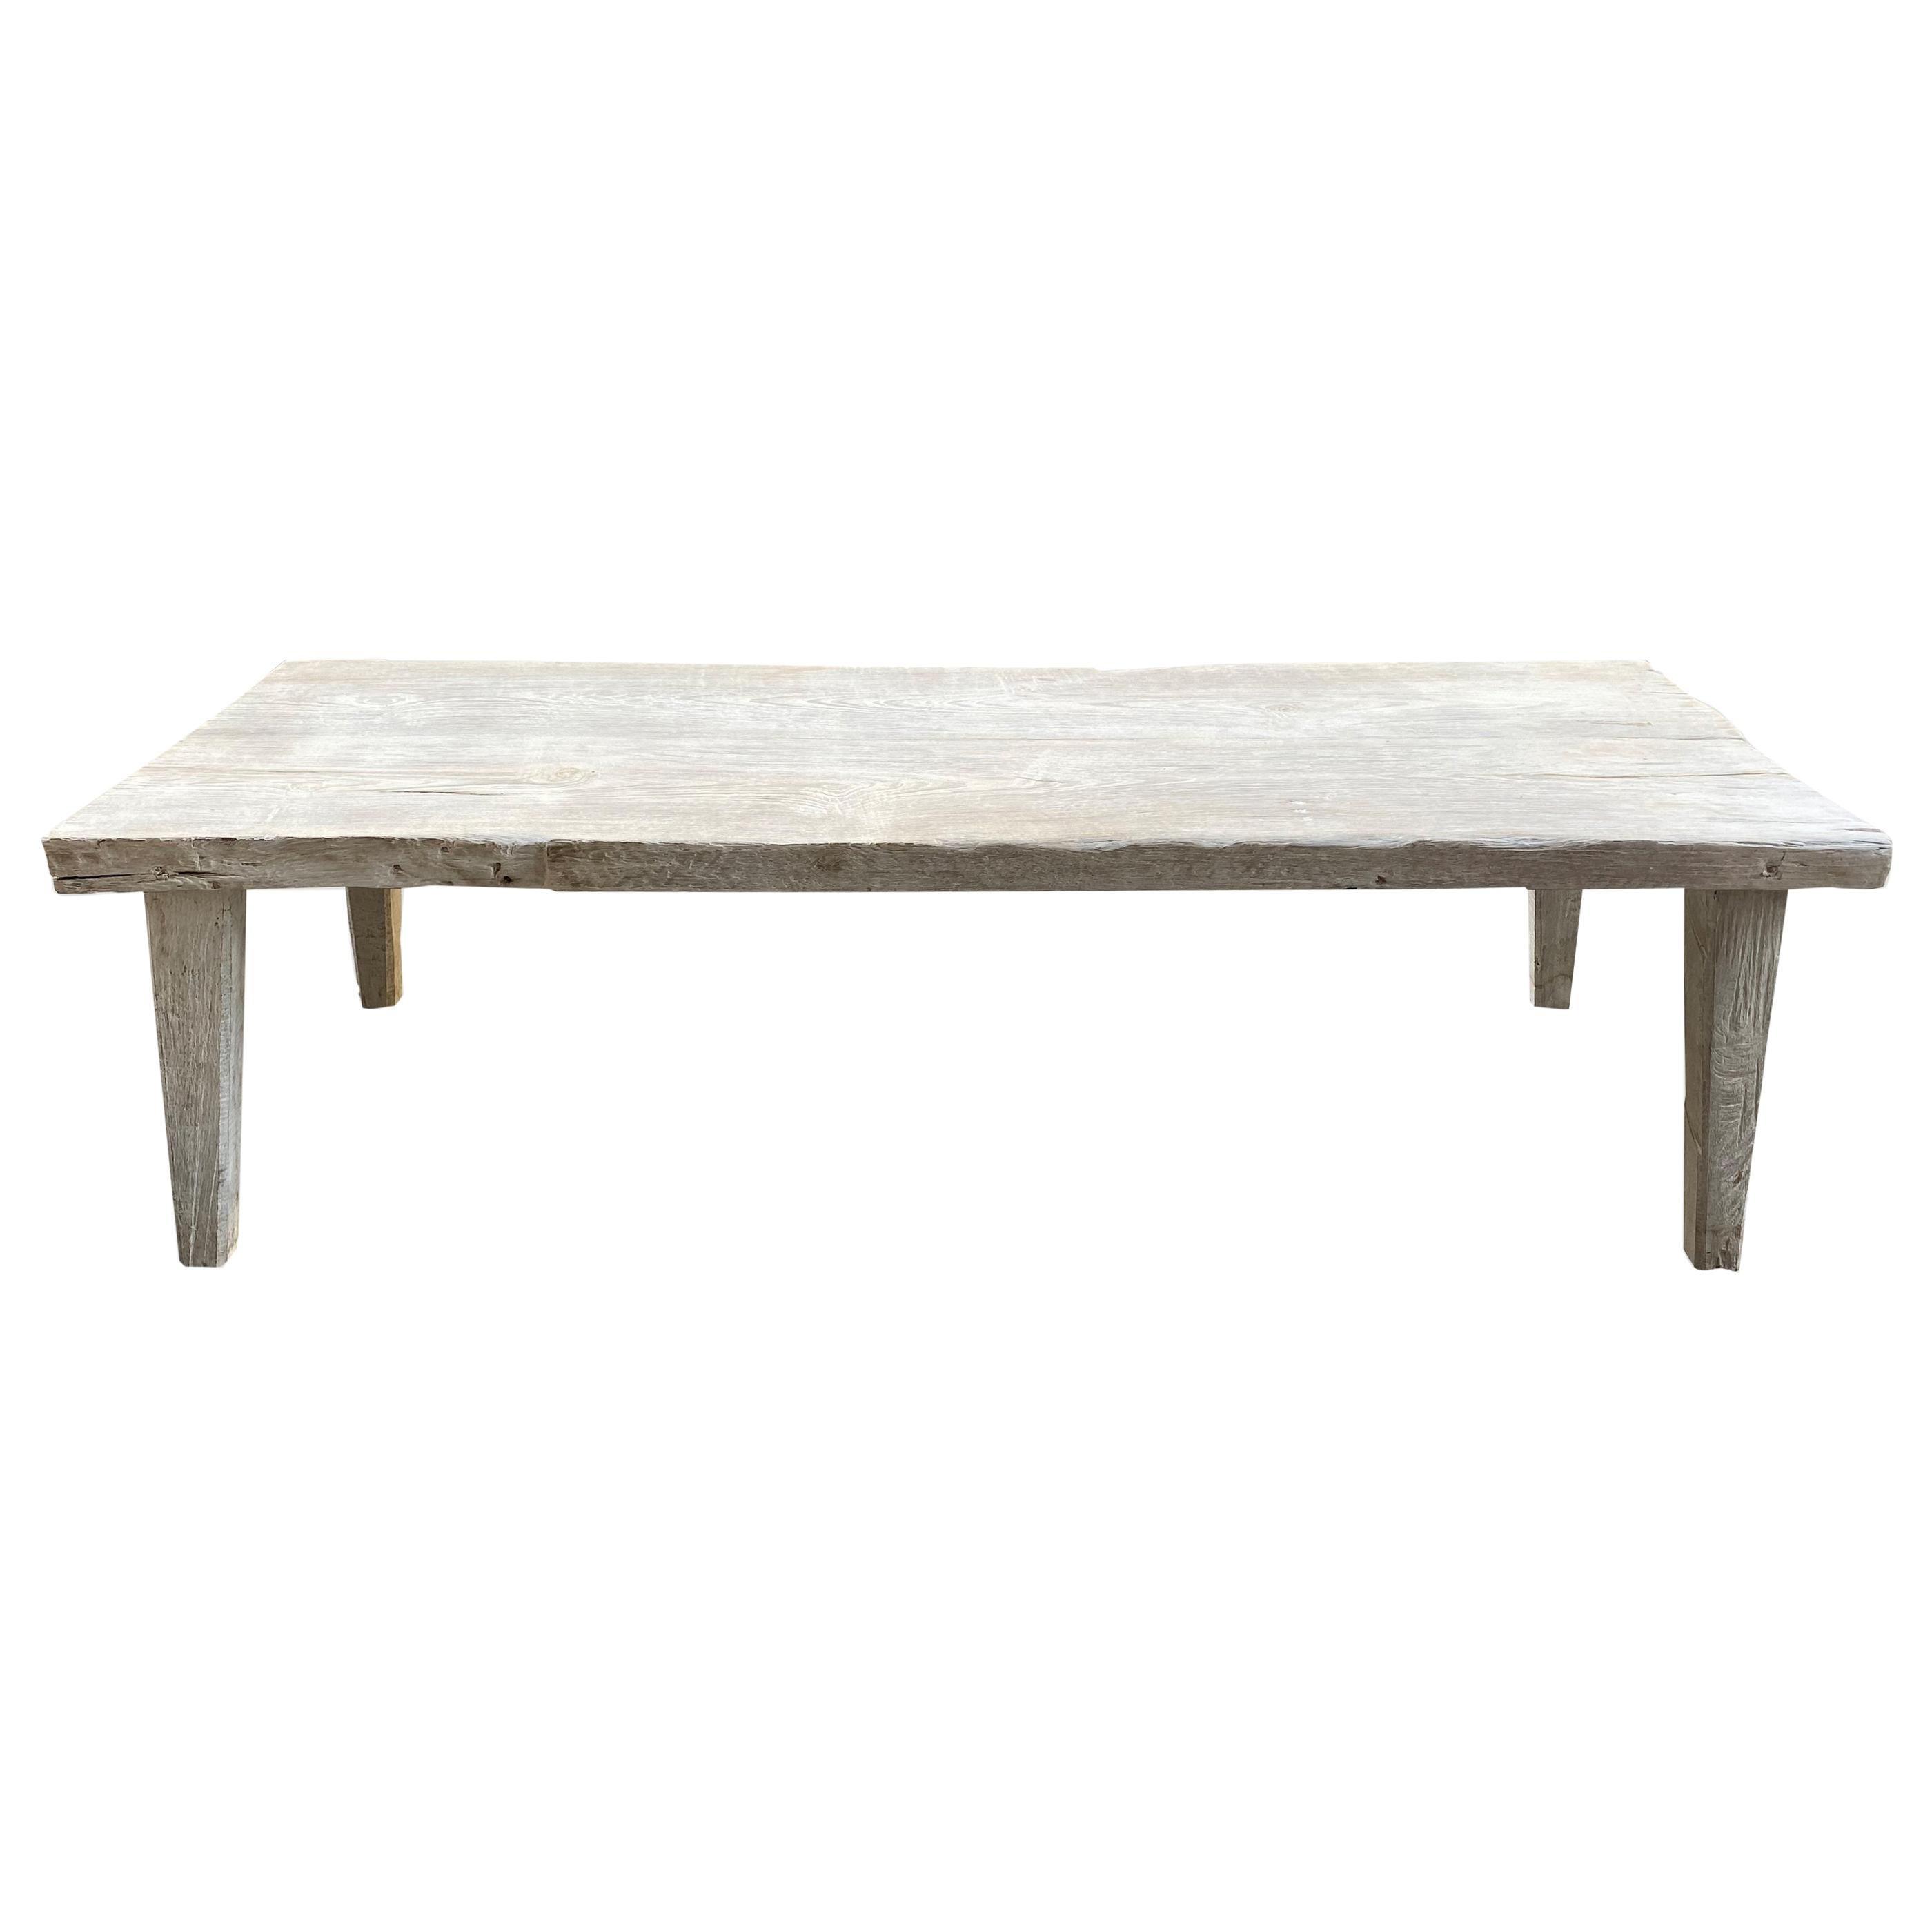 Andrianna Shamaris Bleached Teak Wood Bench or Coffee Table